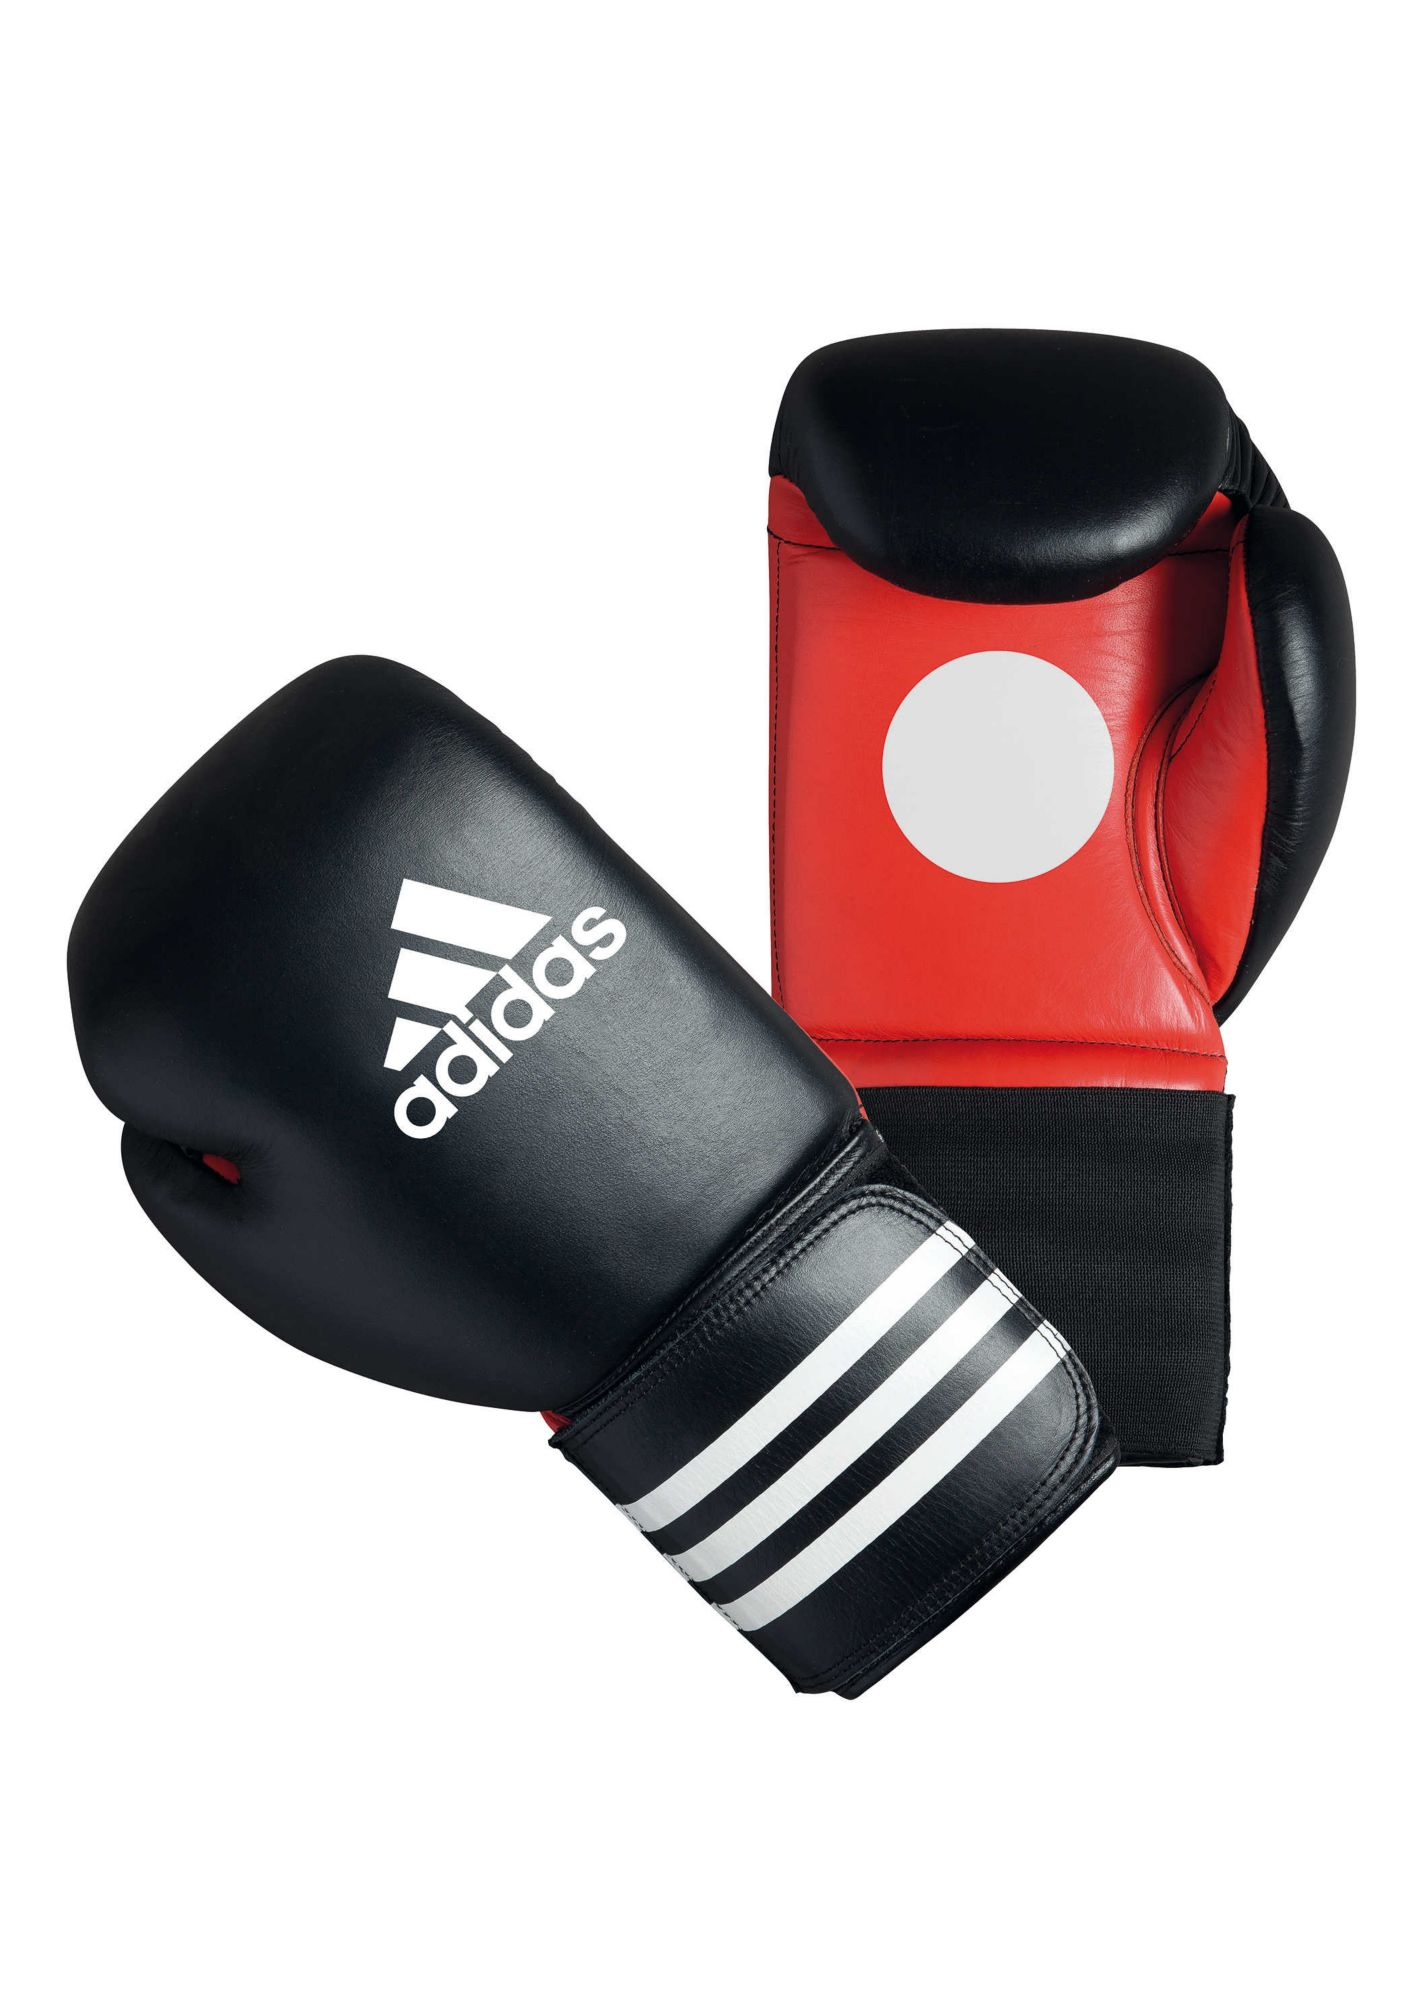 ADIDAS PERFORMANCE Boxhandschuhe, »Sparring Coach Gloves«, adidas Performance